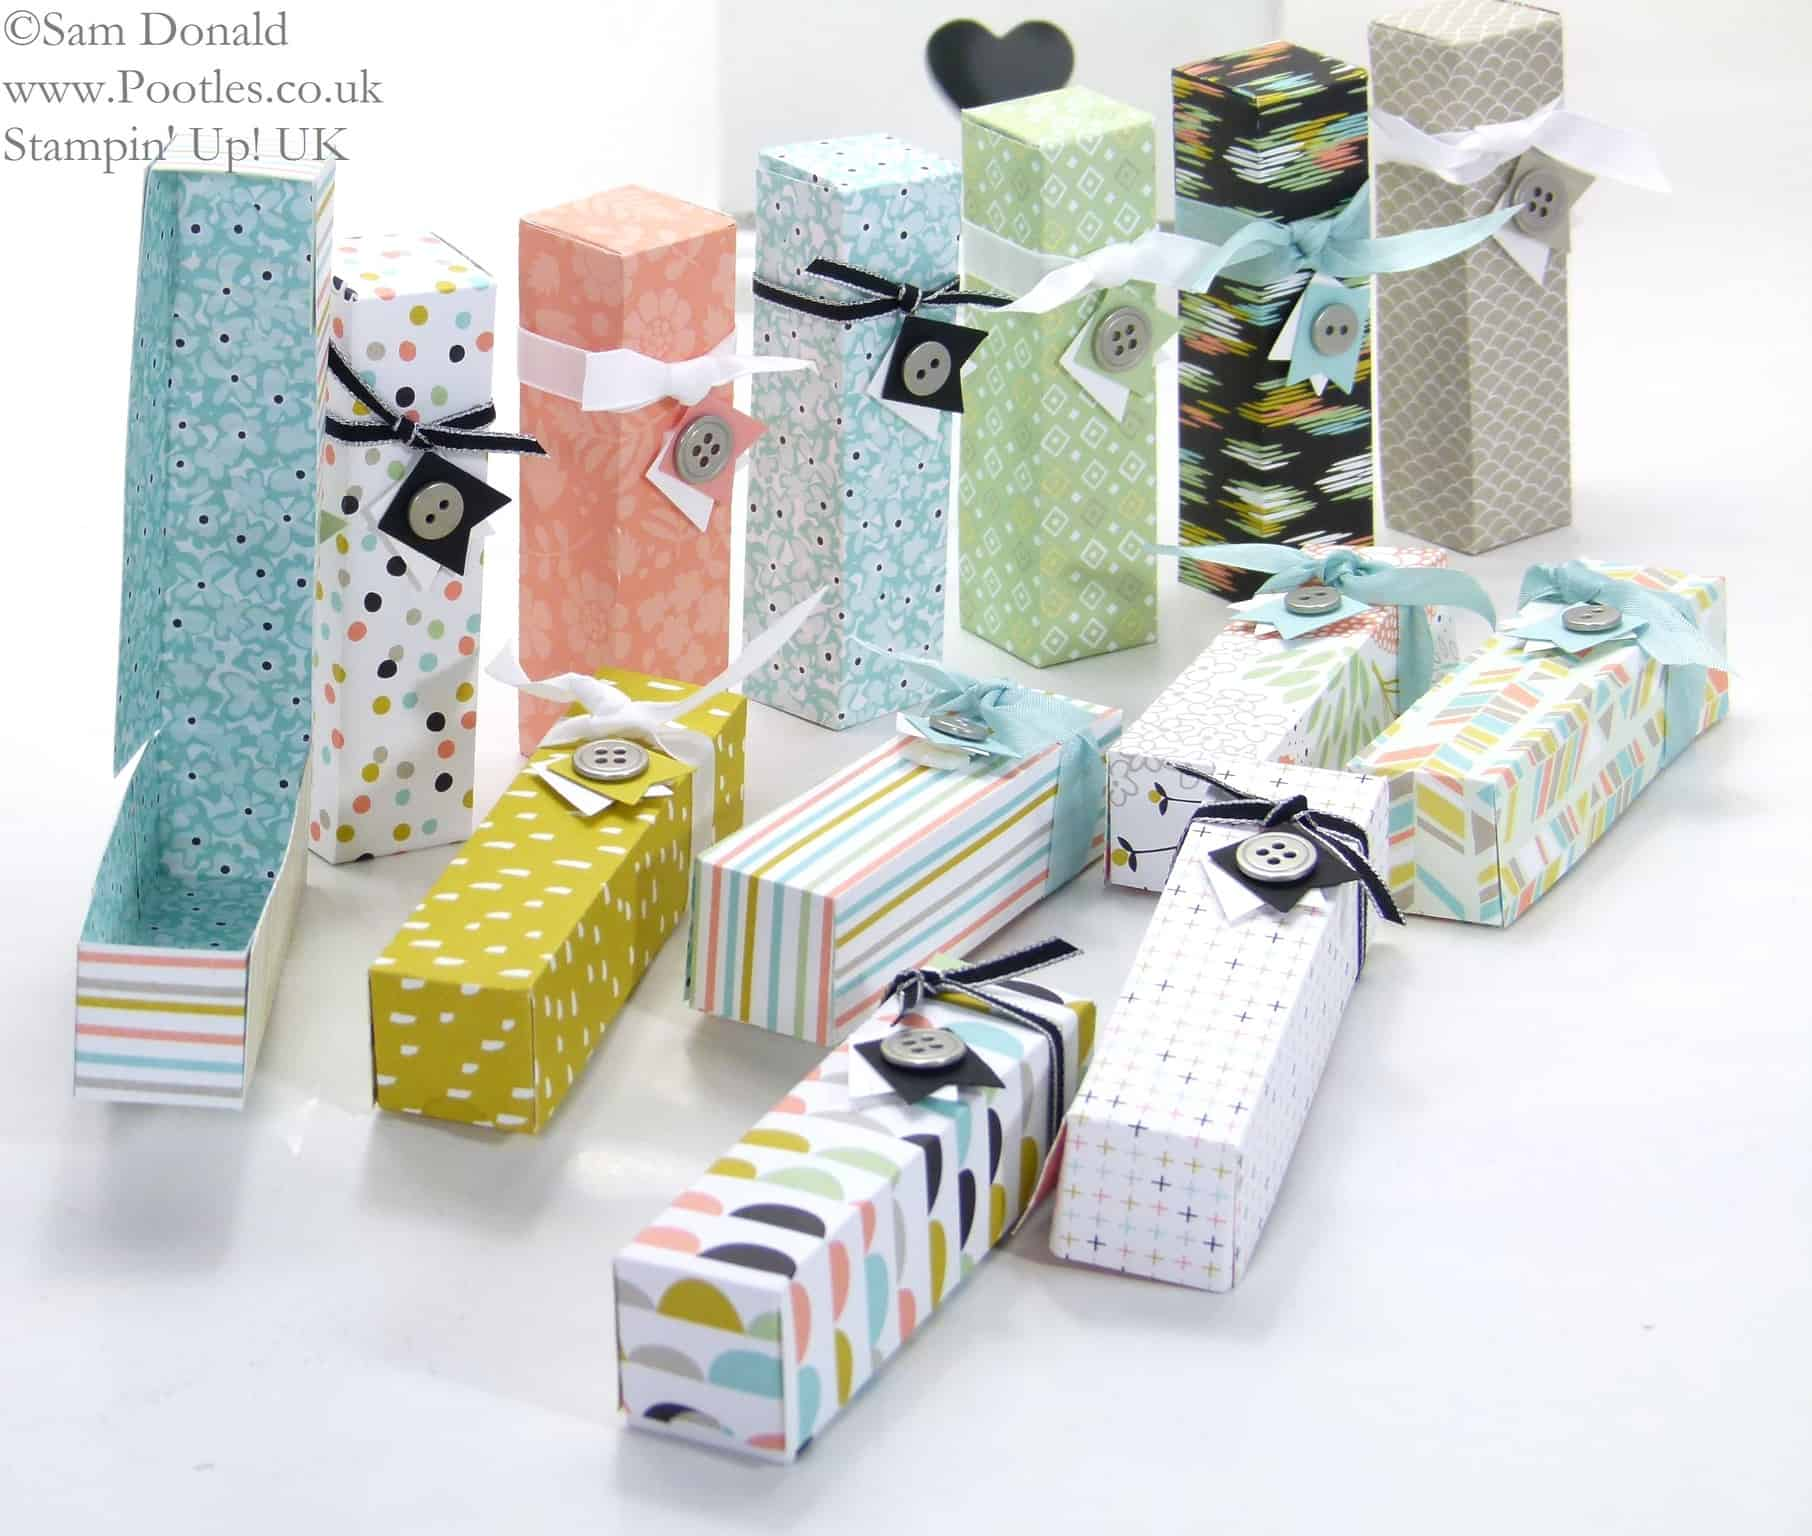 POOTLES Stampin' Up! UK Sale a Bration Dinky Boxes - Sweet Sorbet Showcase Tutorial! 2